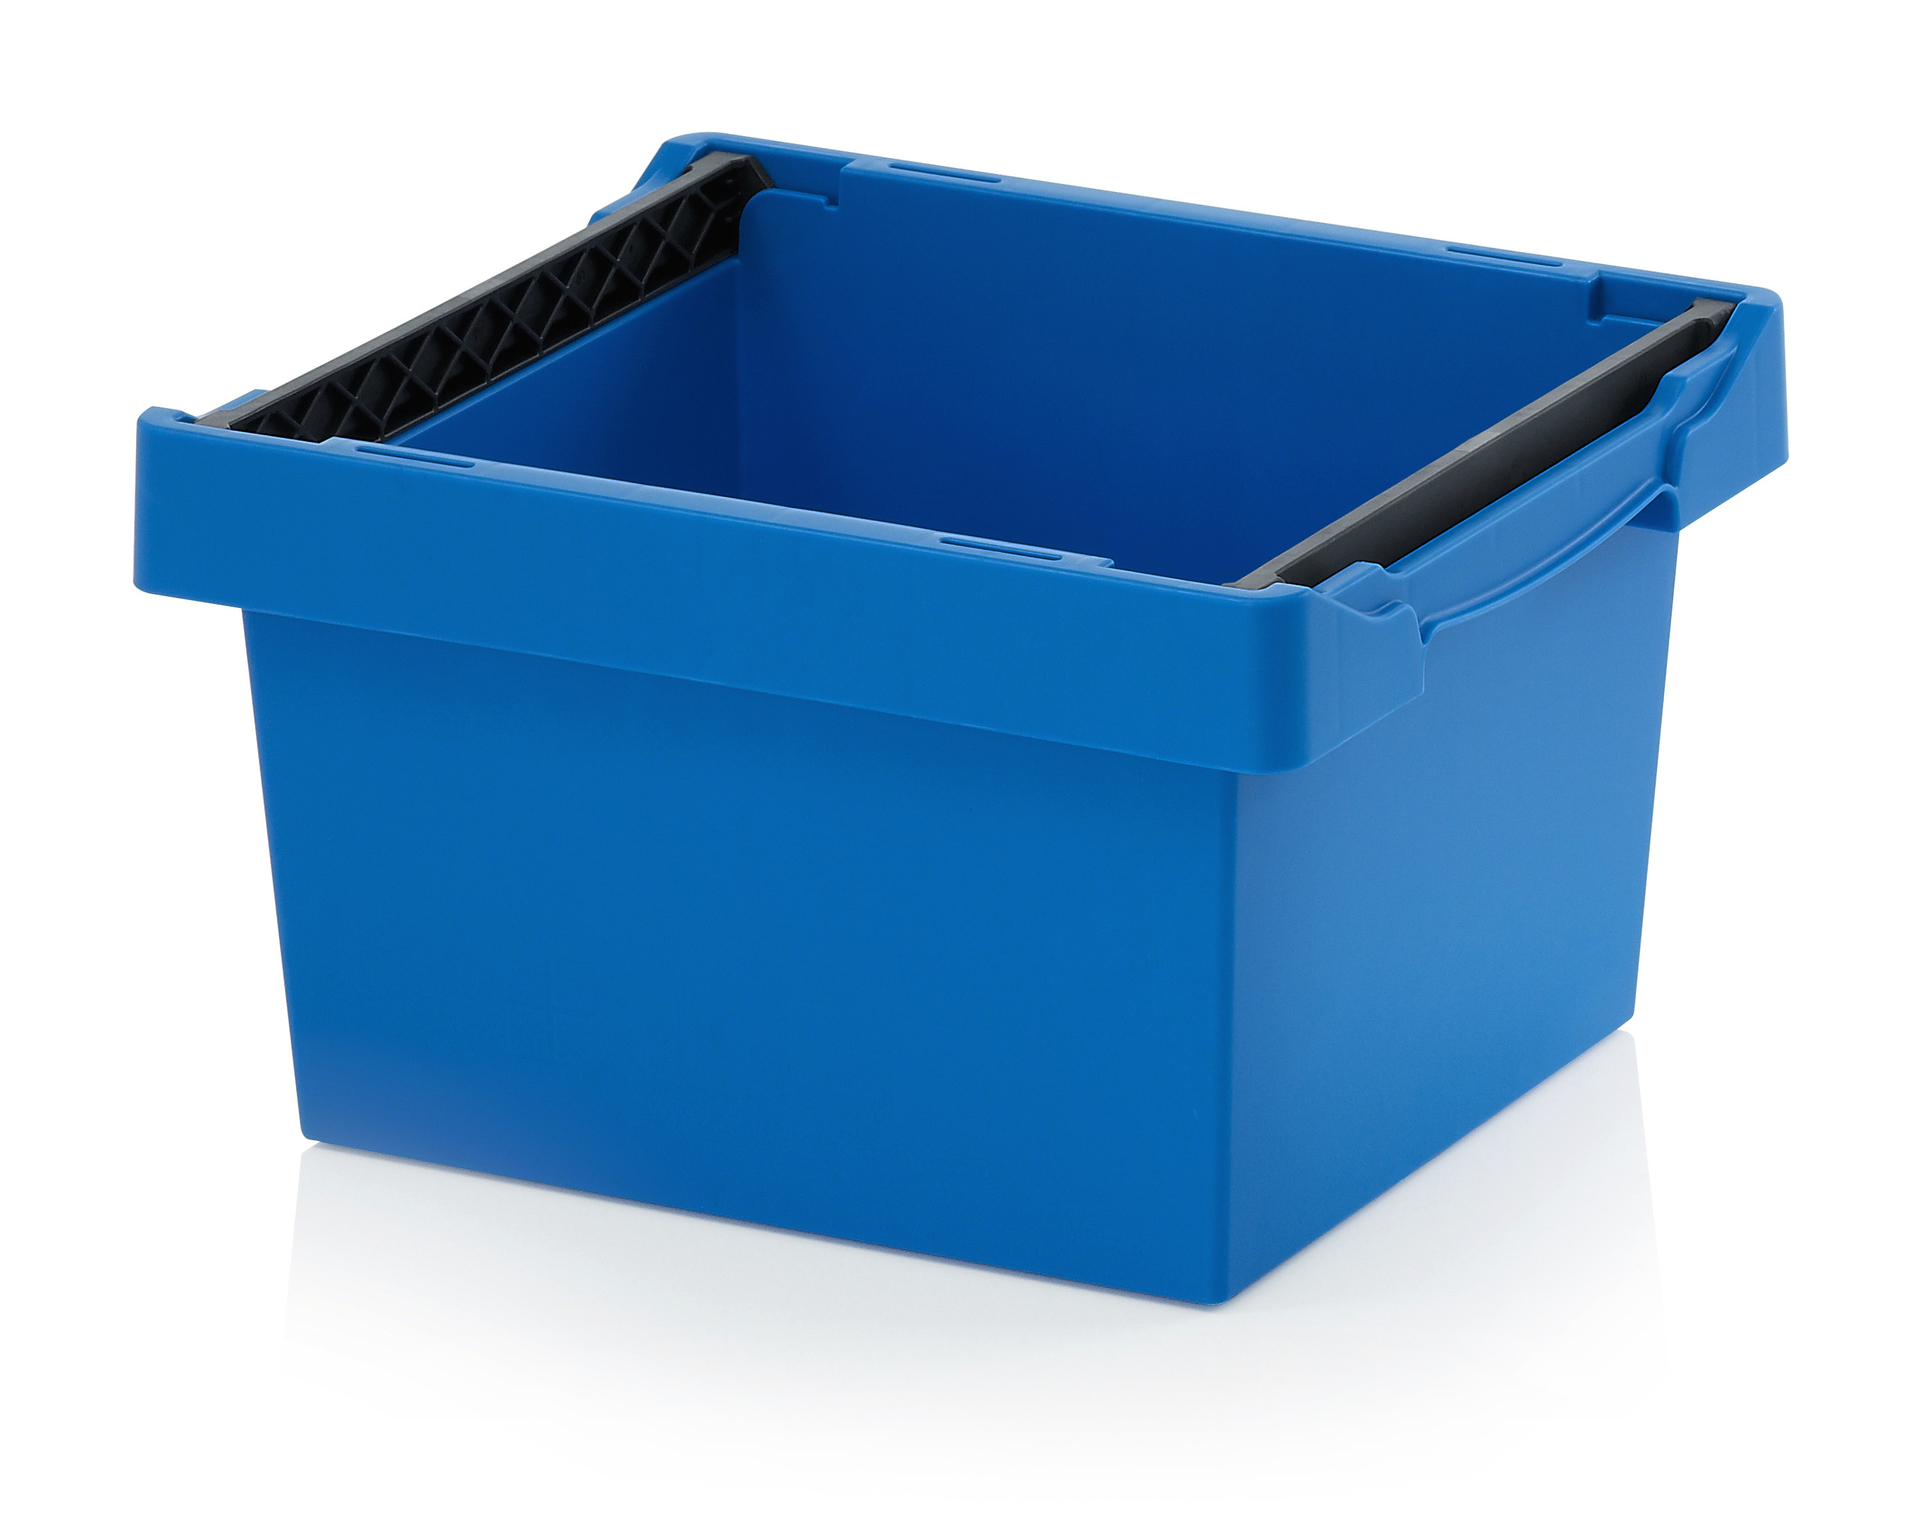 RC4220F_1 Reusable Containers - Plastic Mouldings Northern